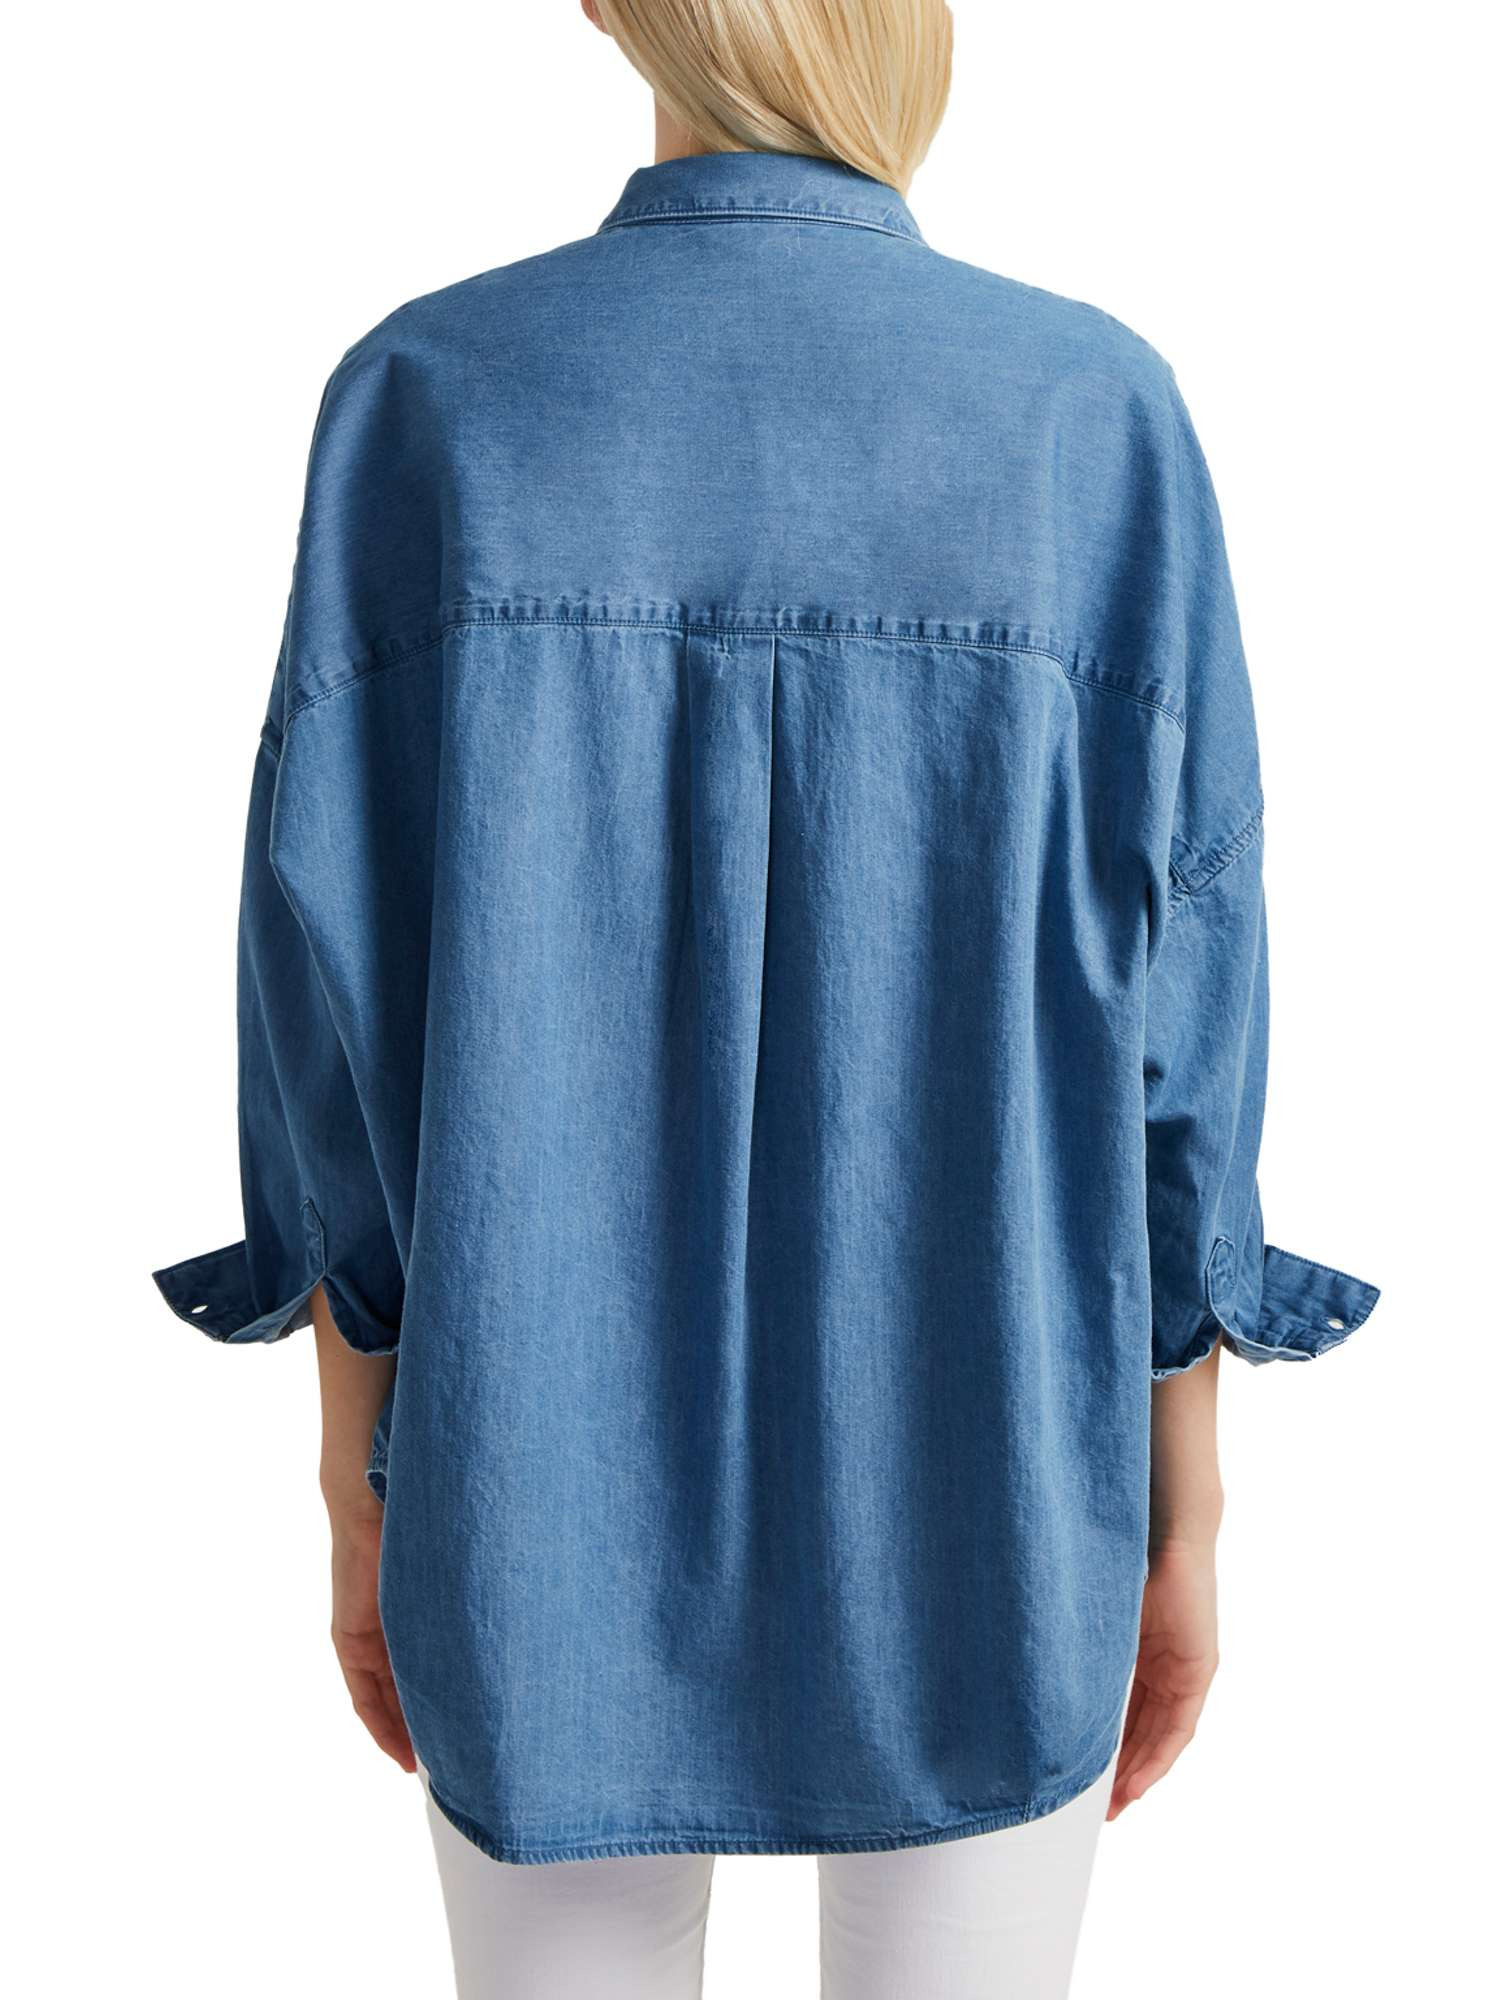 Tidore Chambray French Shirt Popover Connection UqBcZpw5c